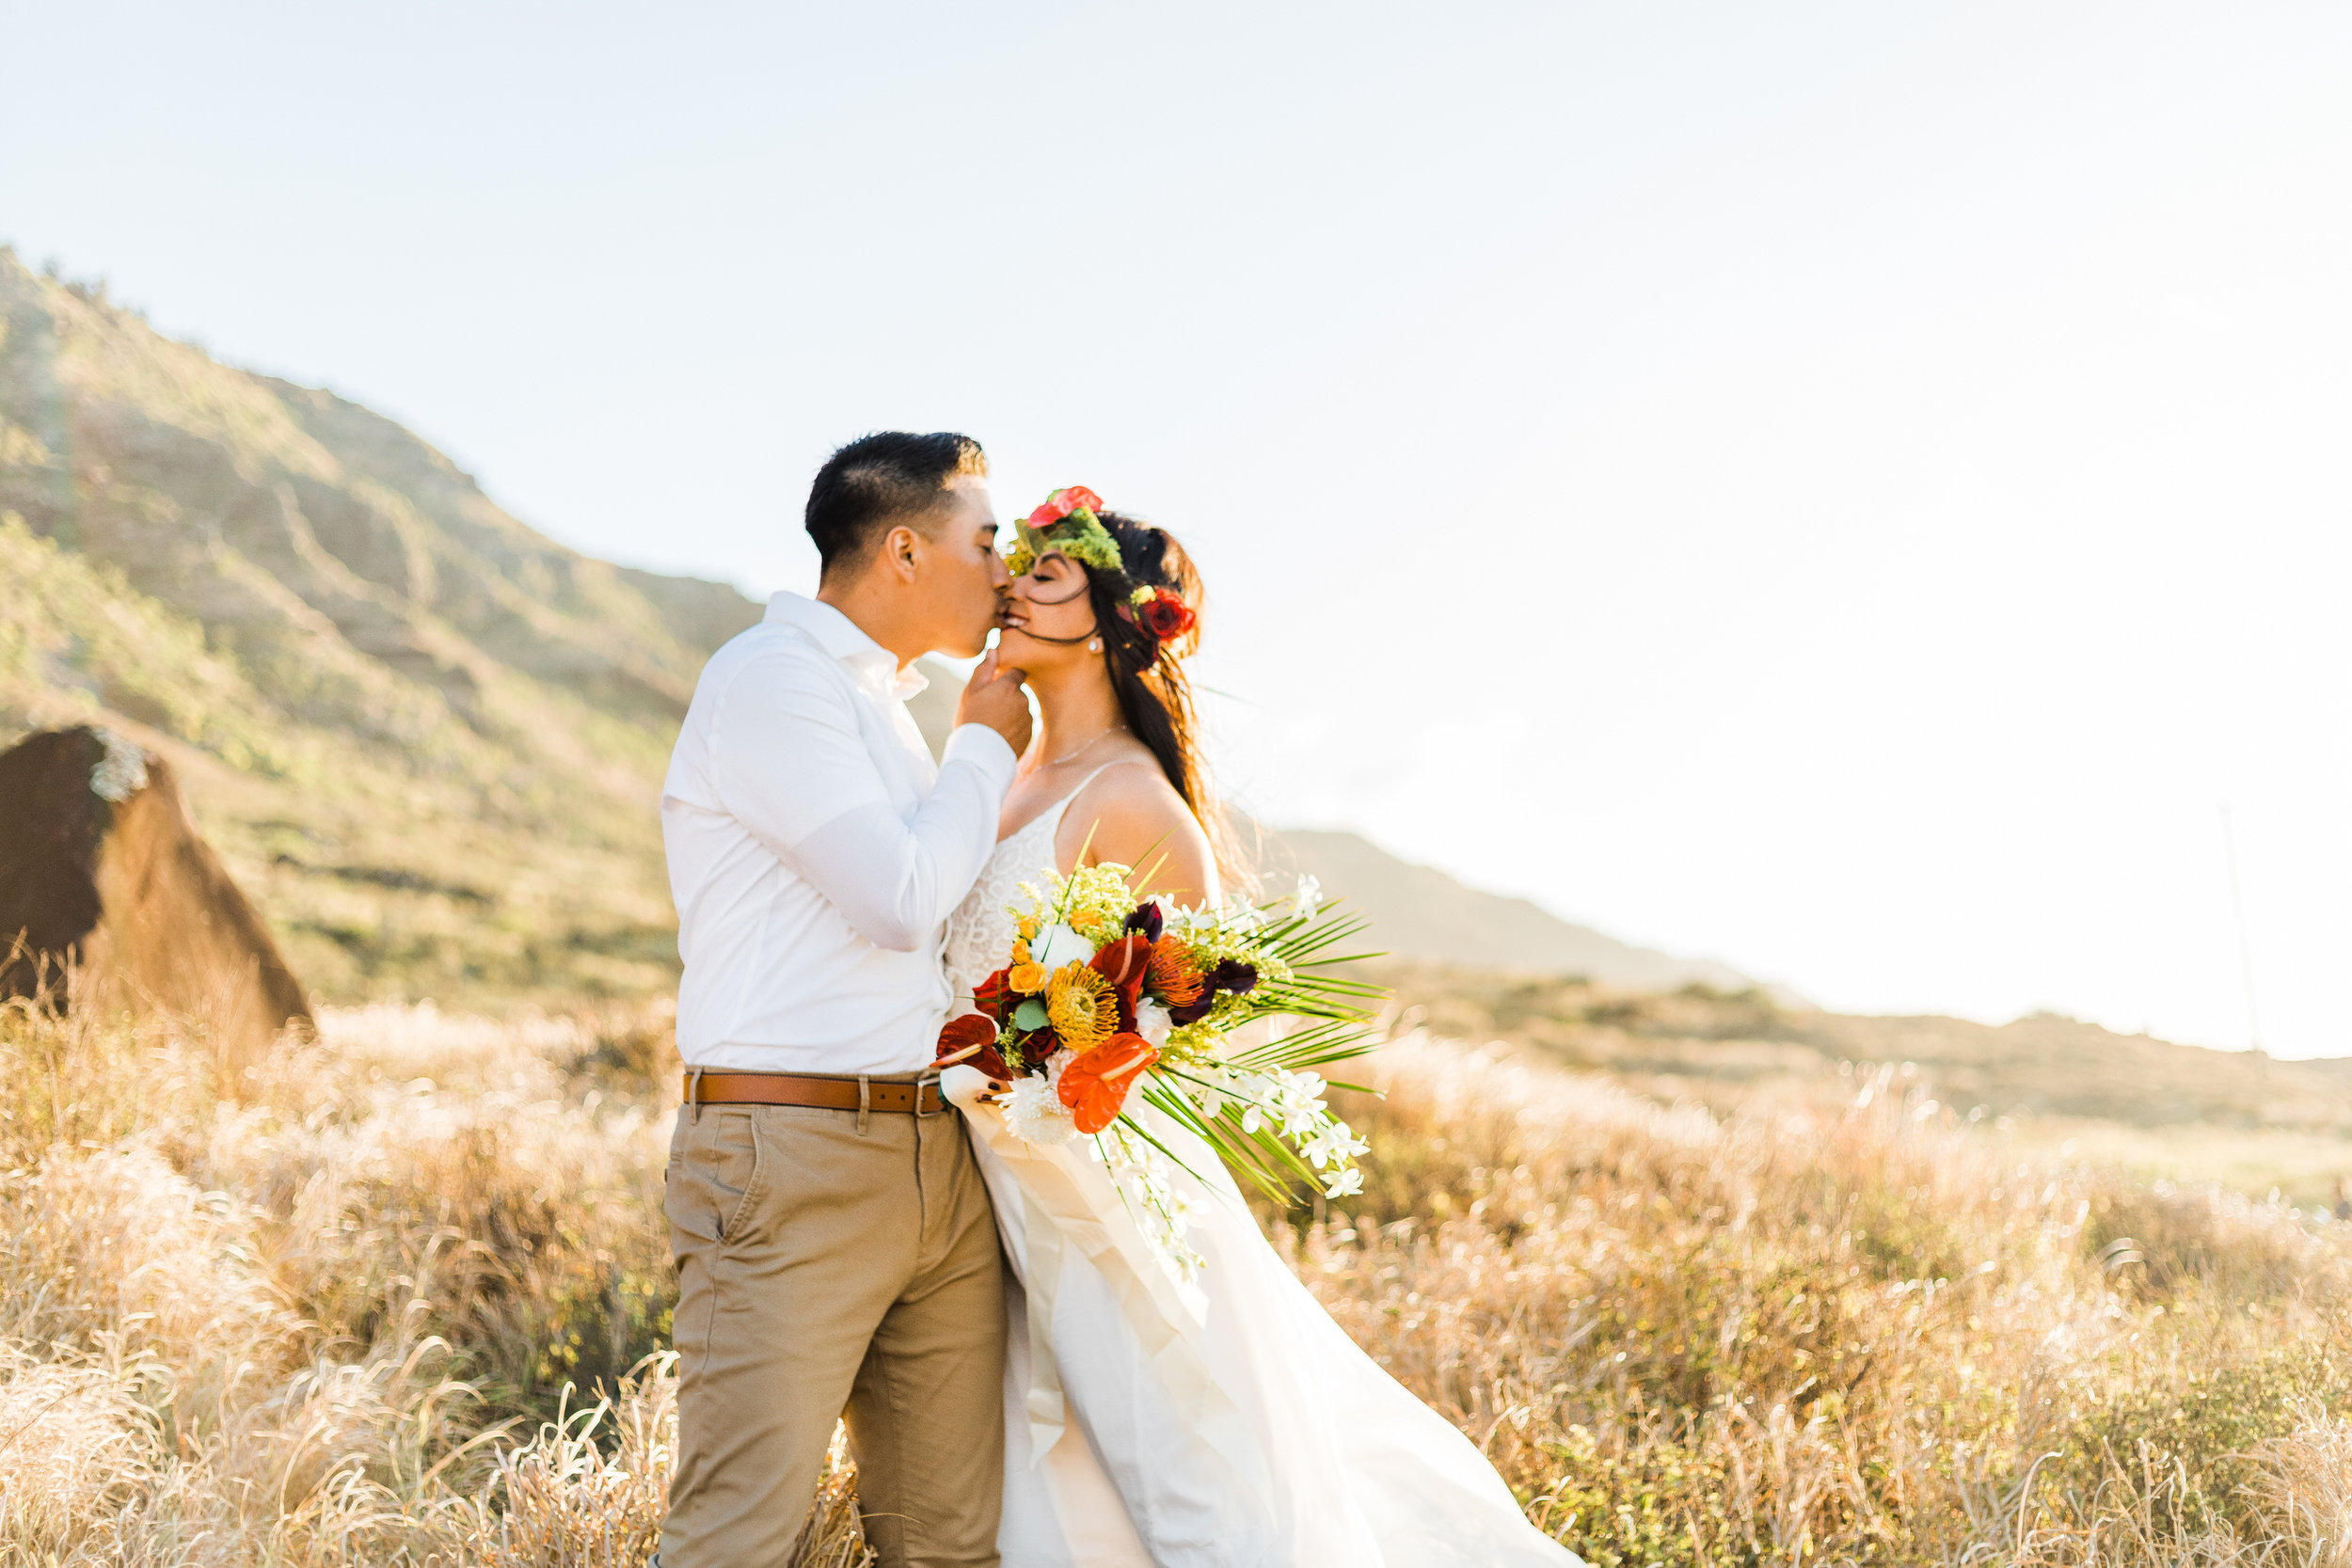 intimate-elopement-sunset-oahu-haku-9.jpg